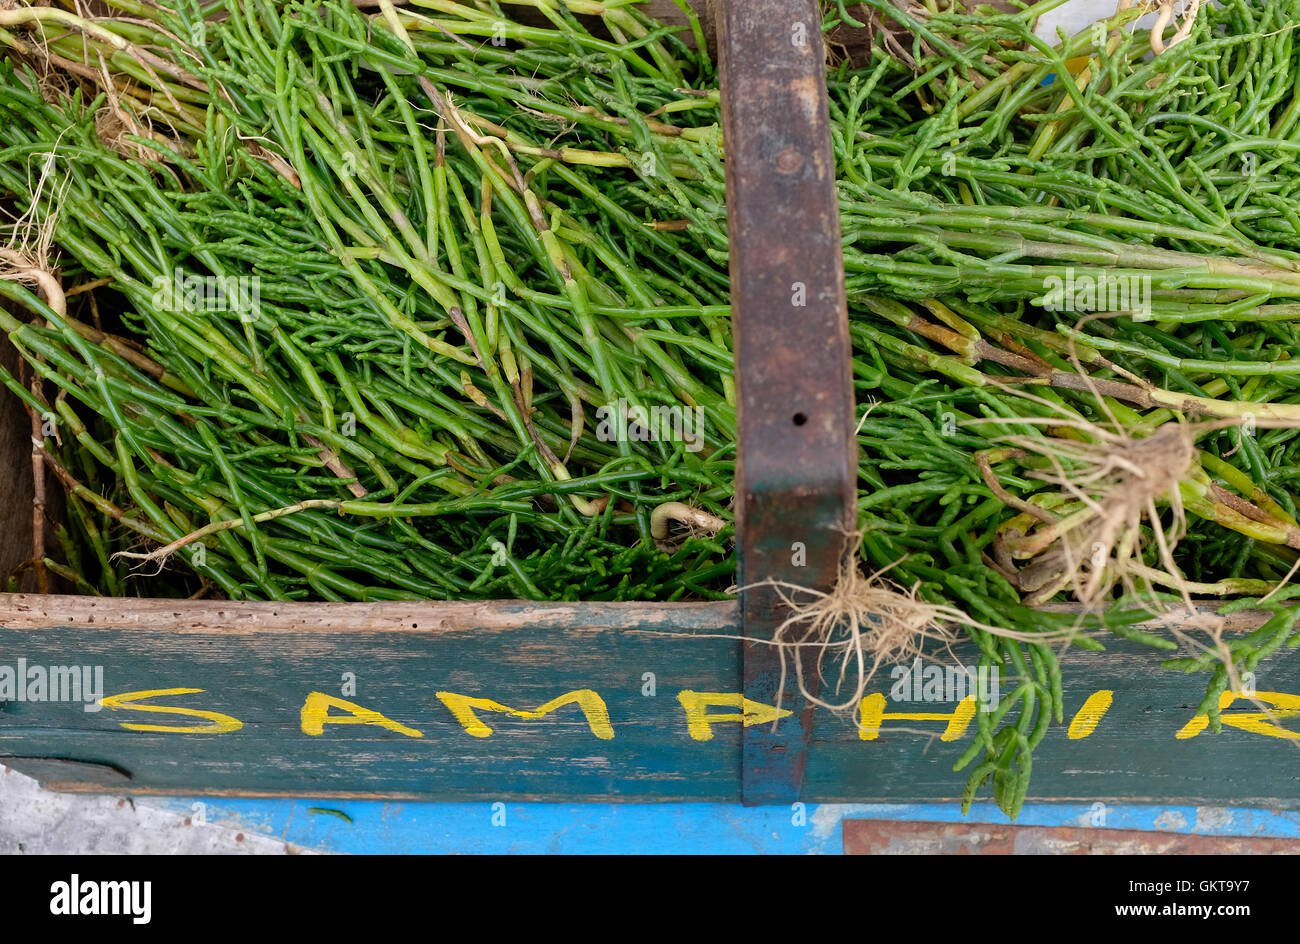 locally picked samphire in wooden box, north norfolk, england - Stock Image